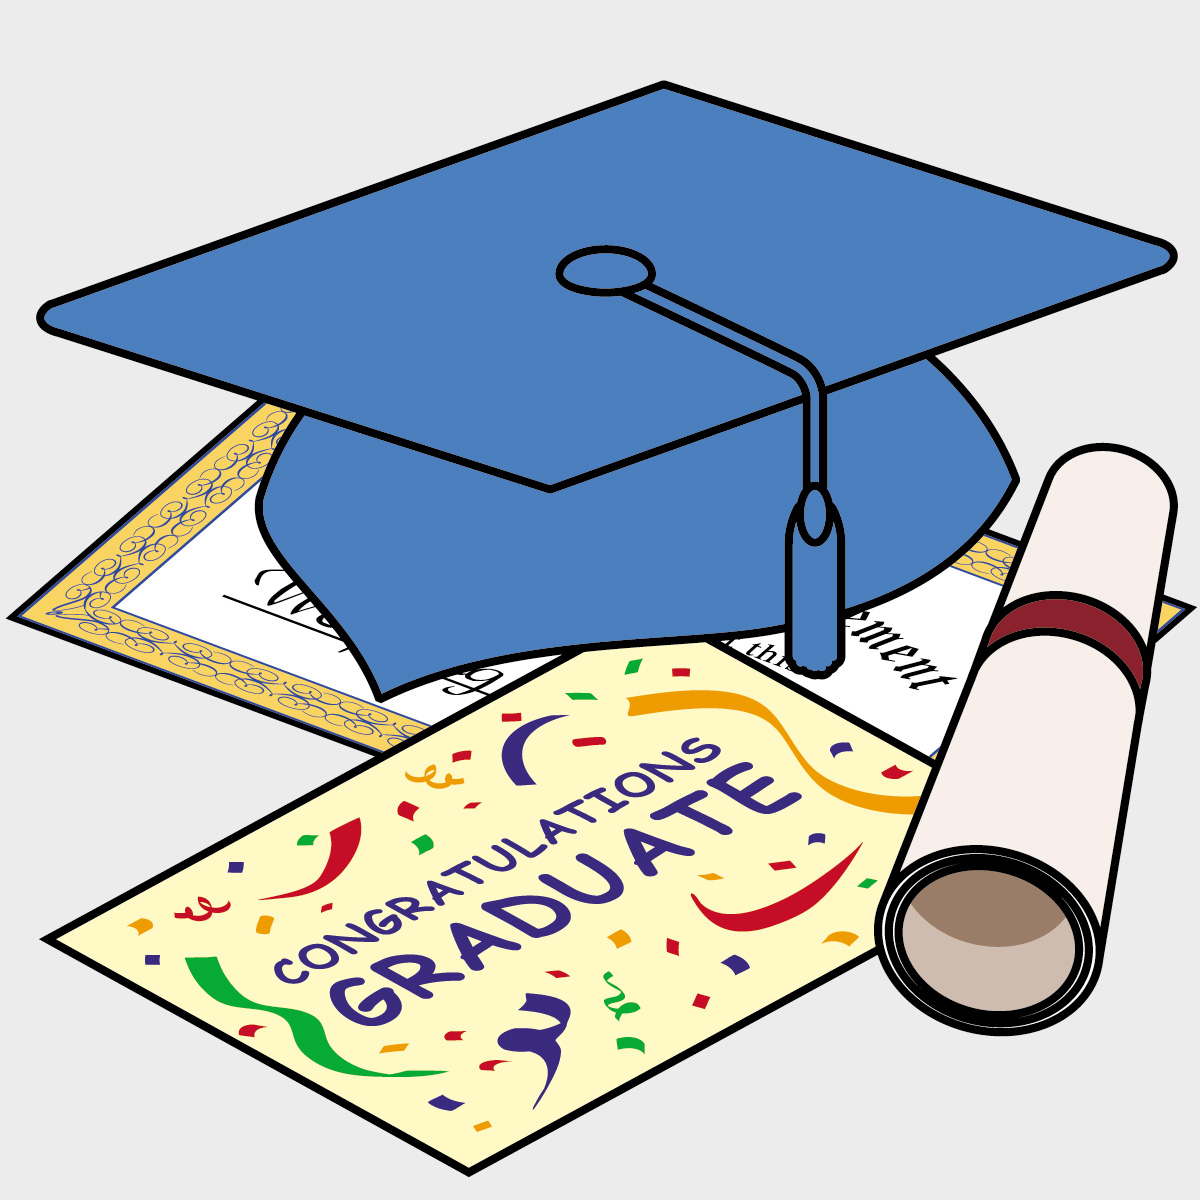 High School Graduation Clip Art - ClipArt Best